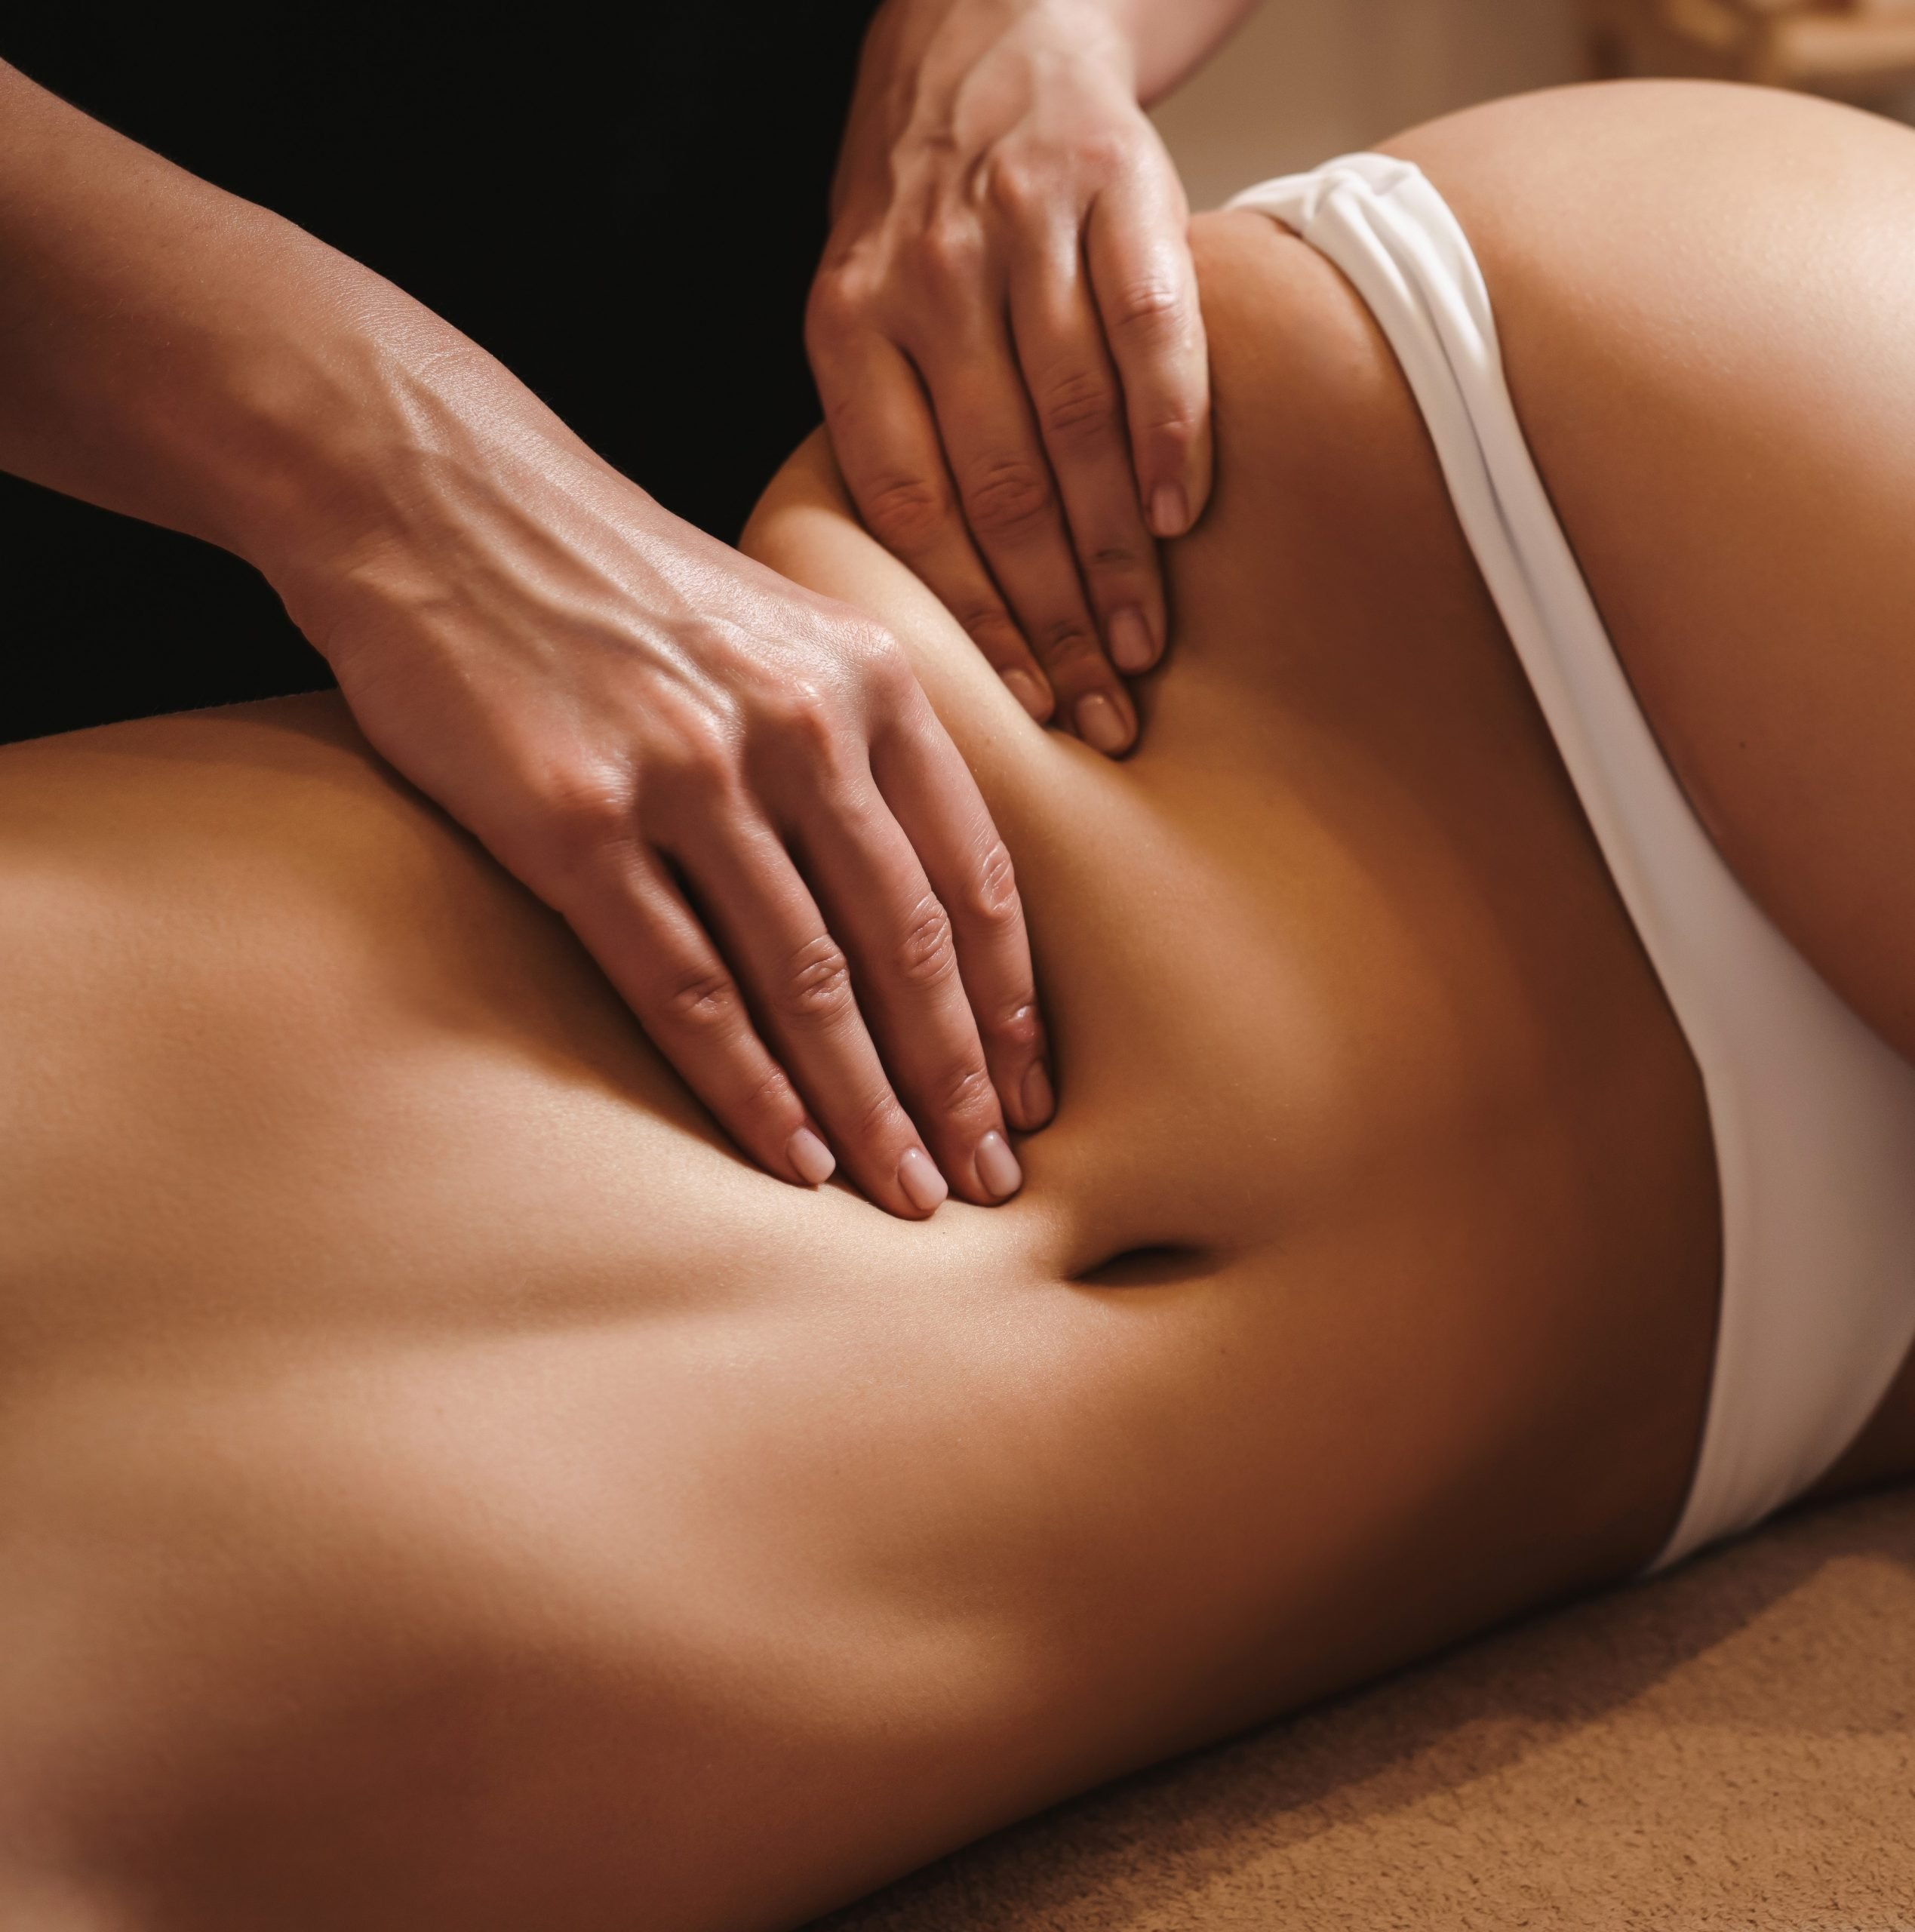 Slimming Massage A strong massage that helps reduce cellulite and improve body tone with a warming cream that also works as a slimming cream massage. We come to your home with massage table, linens, candles, music and oil.